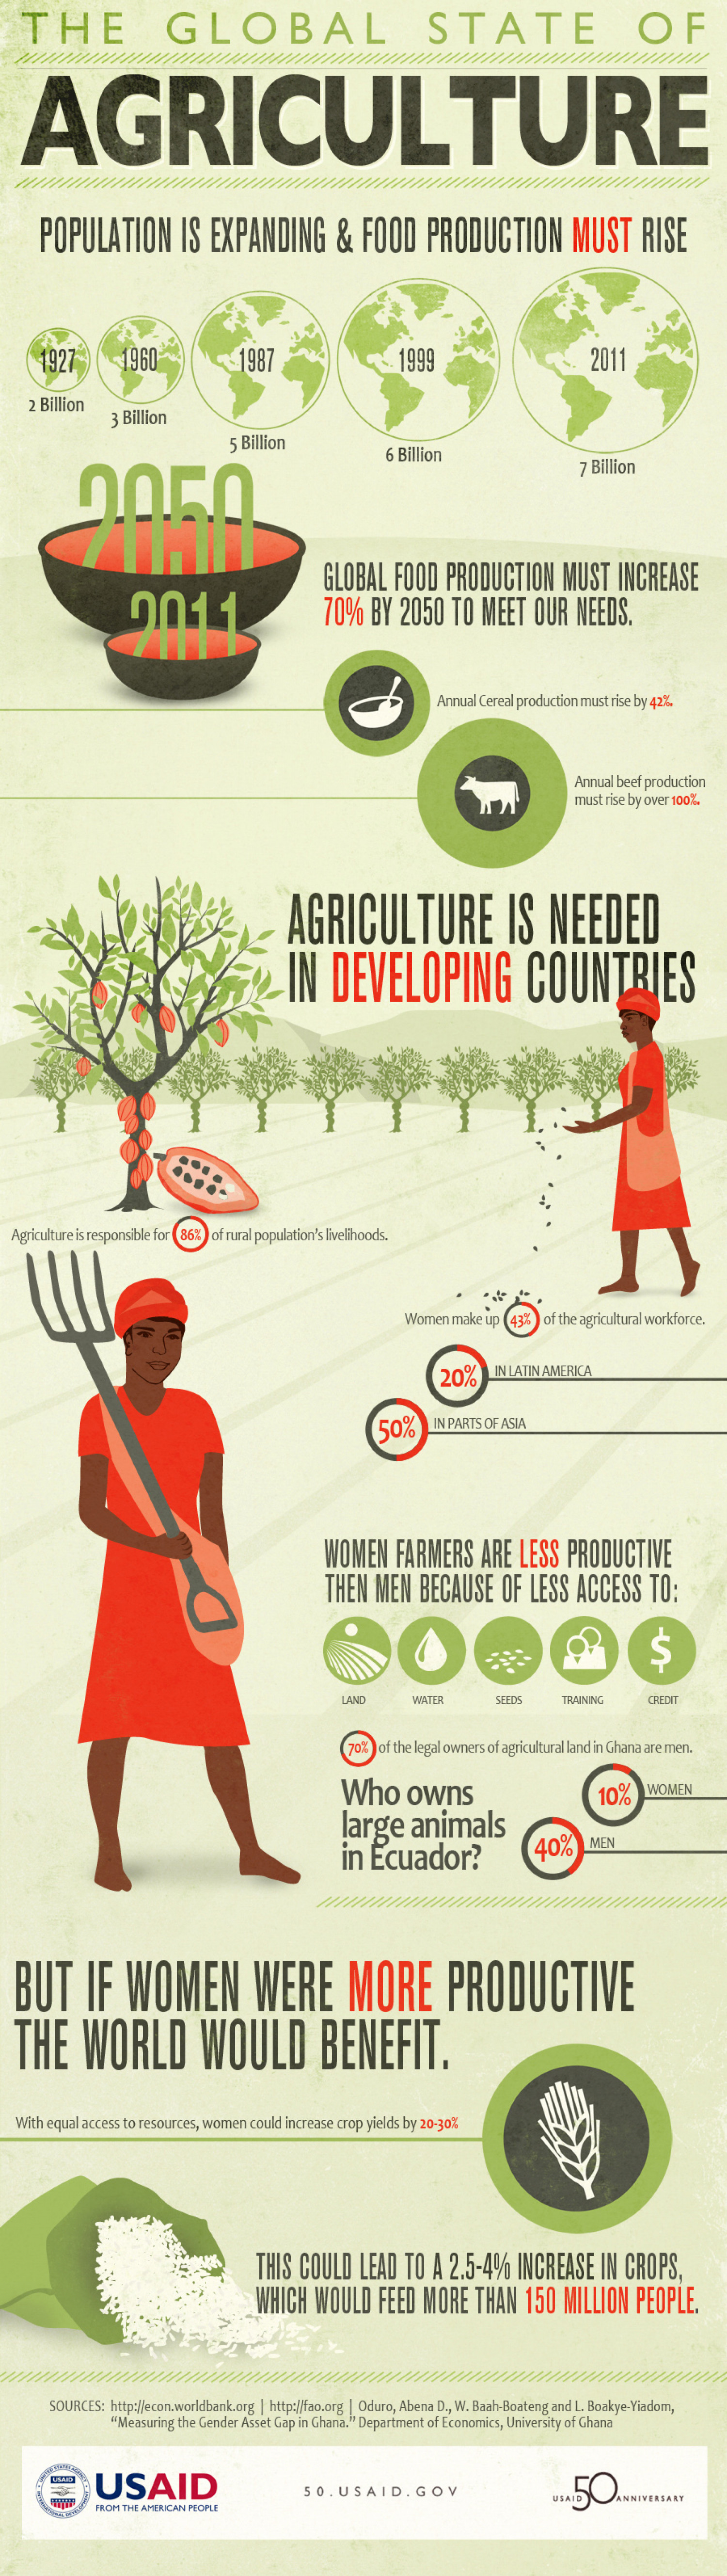 The Global State of Agriculture Infographic